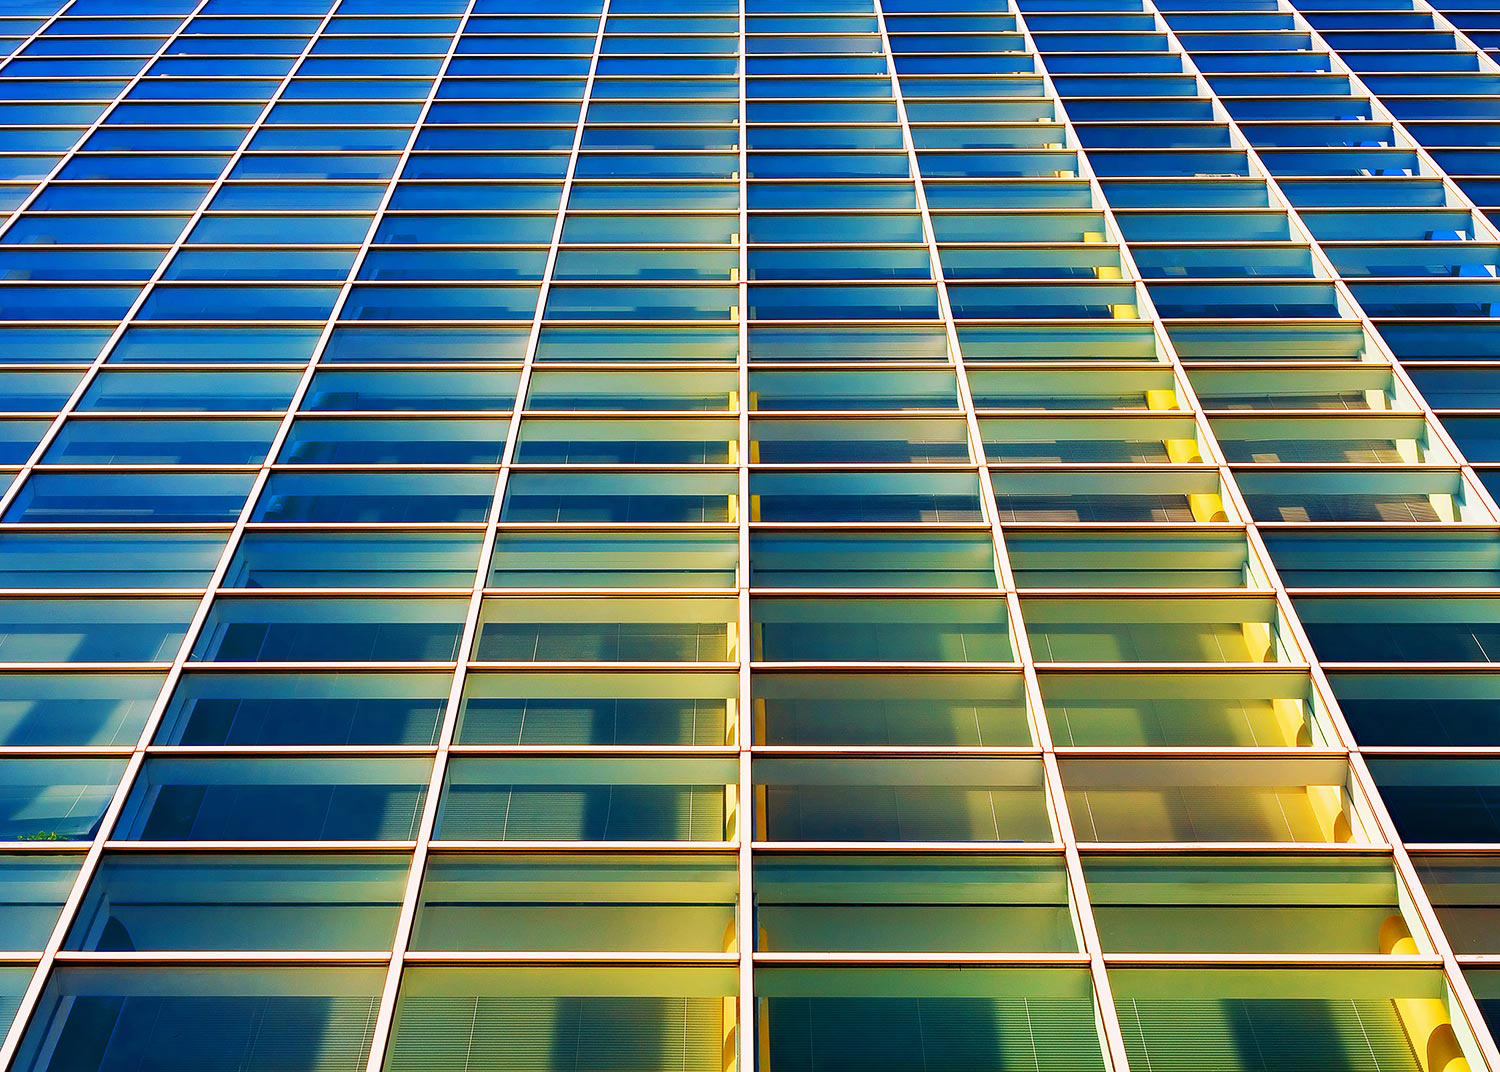 Turquoise Building